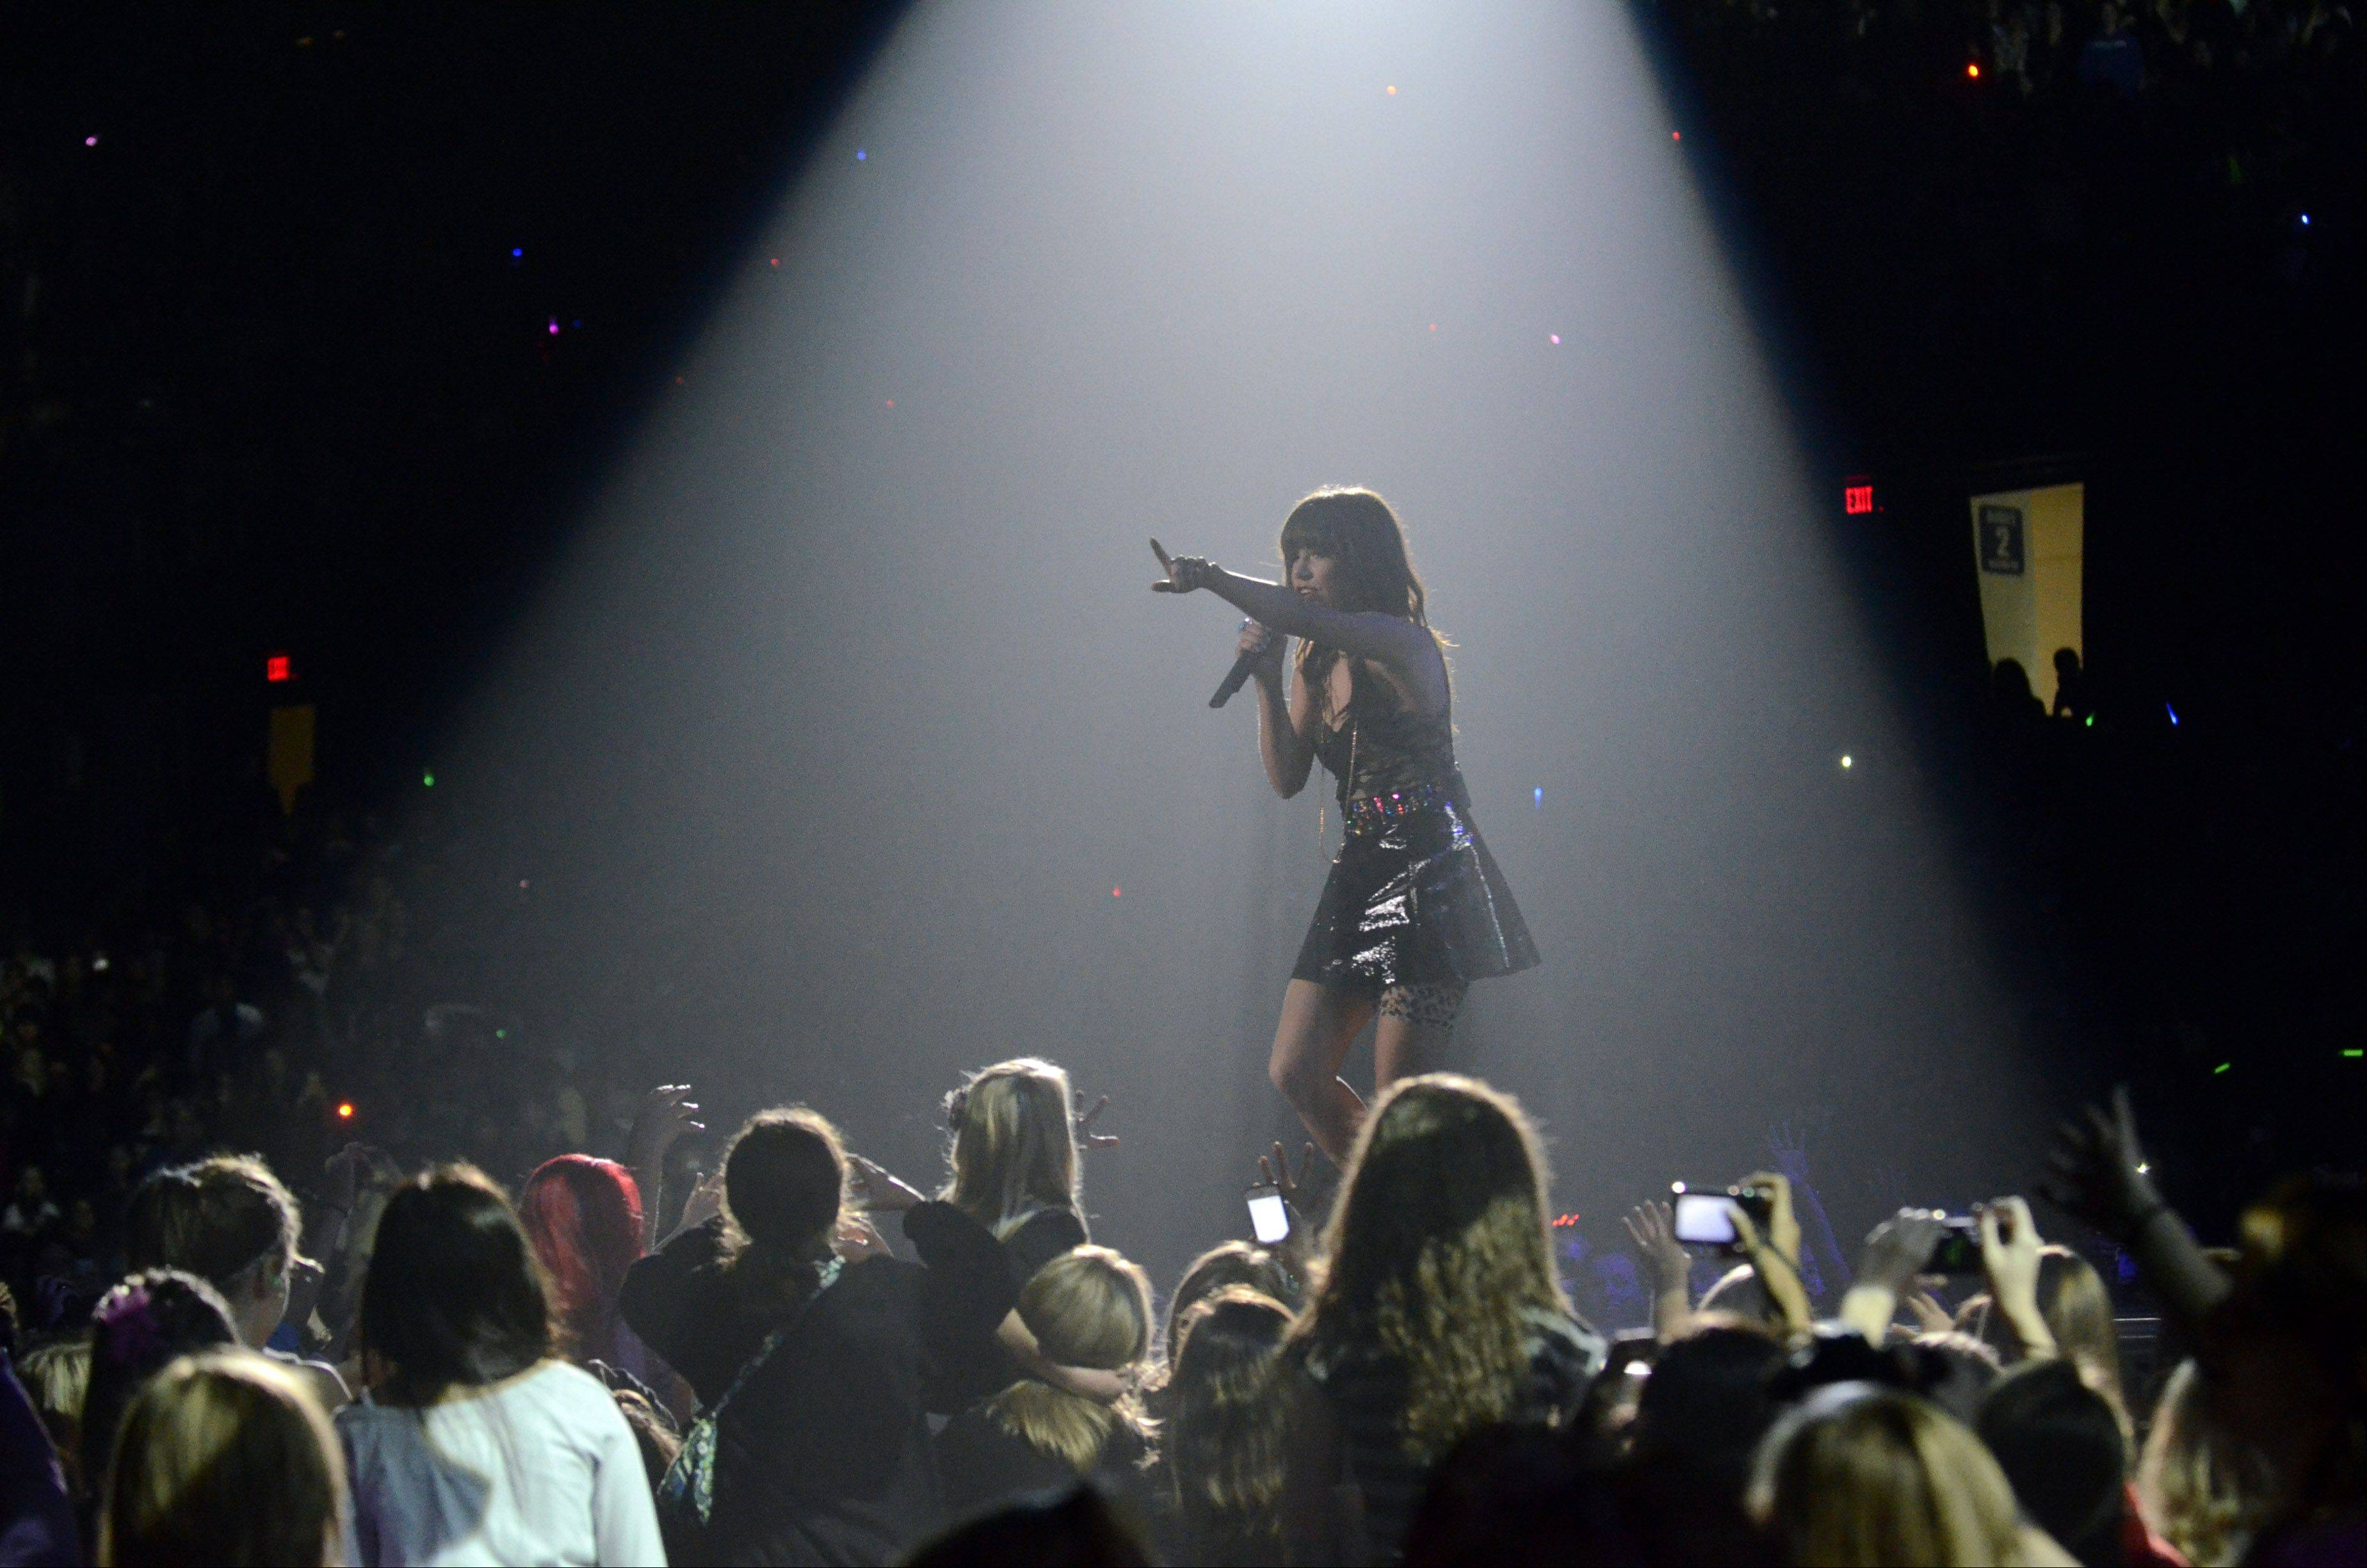 Carly Rae Jepsen performs as part of Justin Bieber's Believe tour at the Allstate Arena in Rosemont on Tuesday, October 23, 2012.